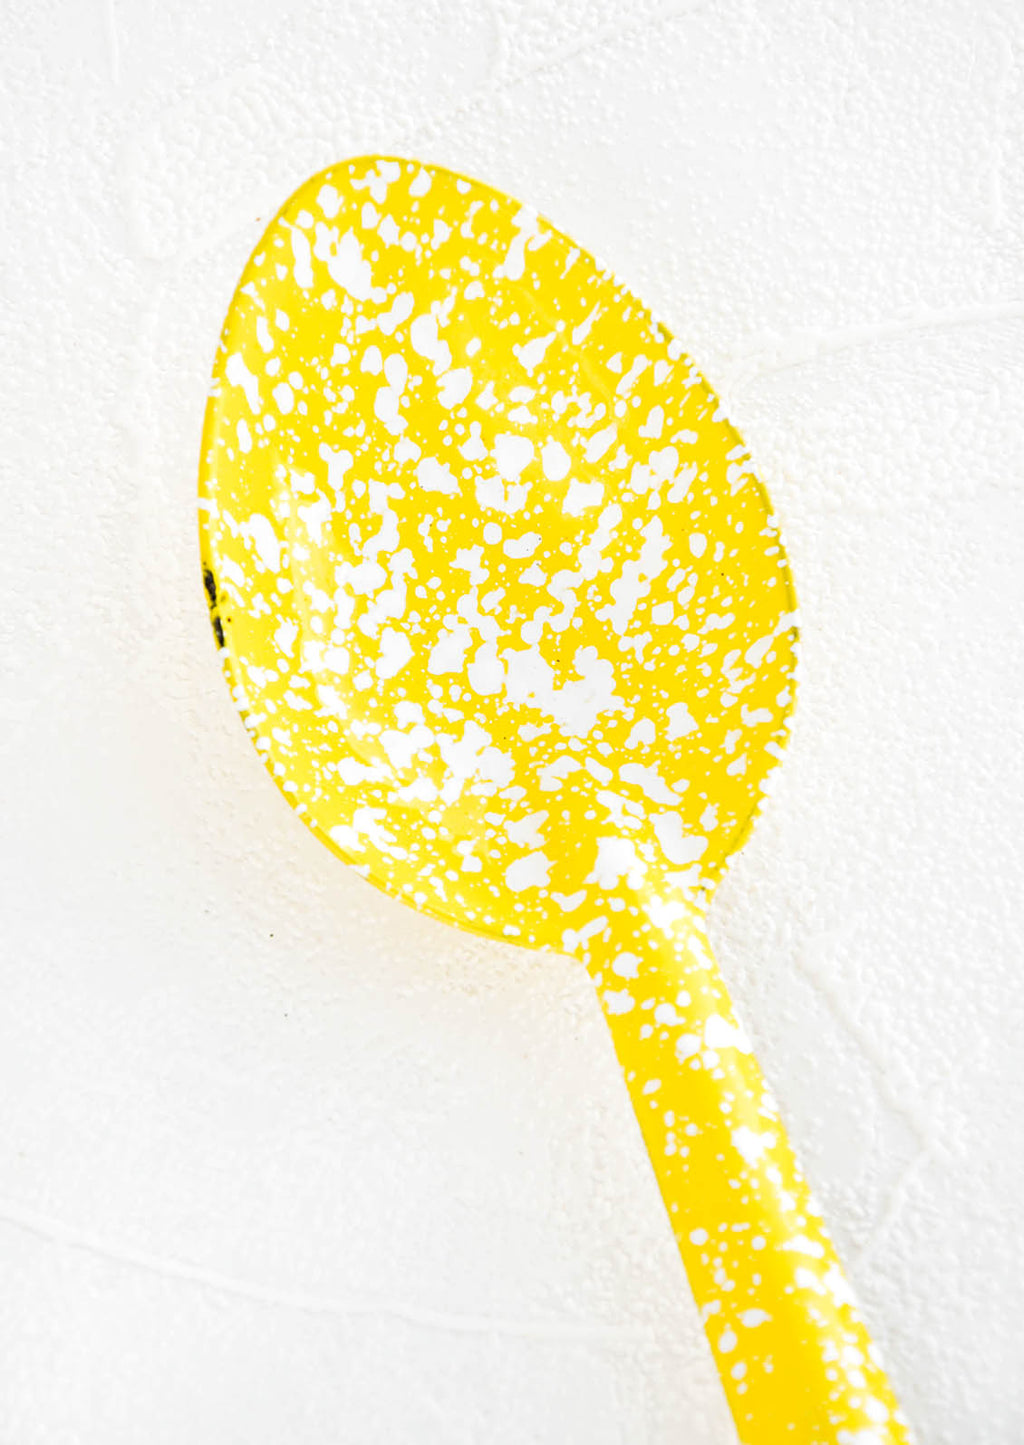 2: Metal spoon with splattered yellow and white enamel coating